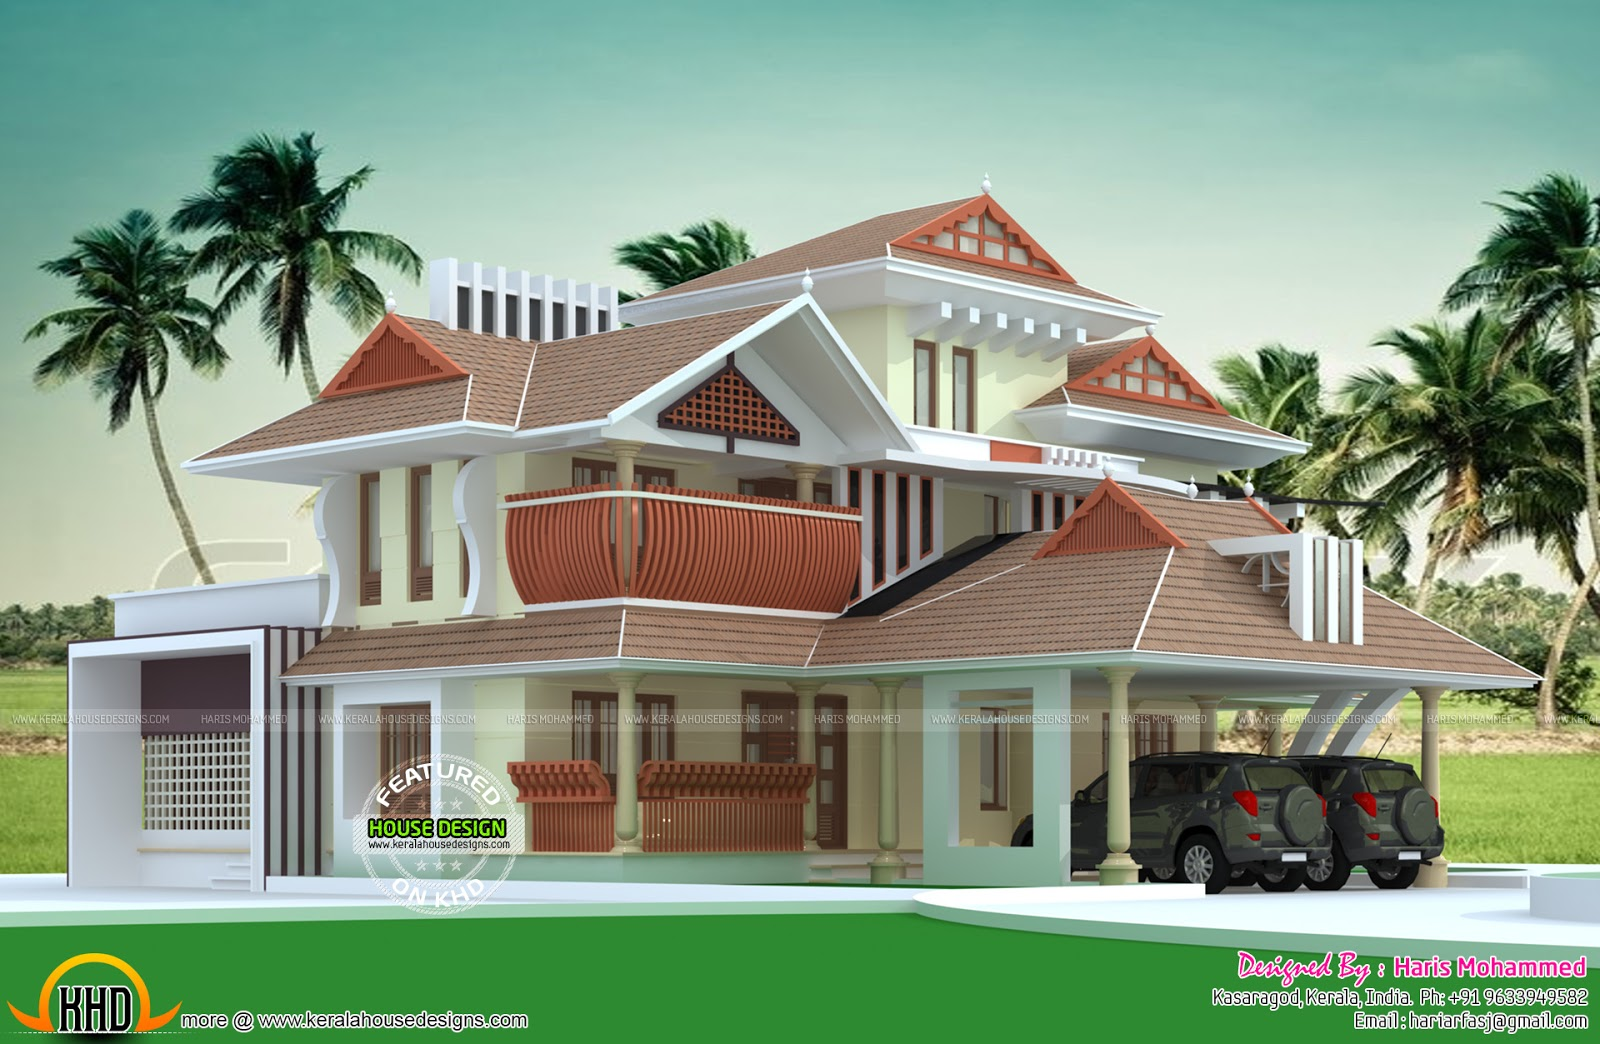 New traditional vastu based kerala home design kerala for New home designs